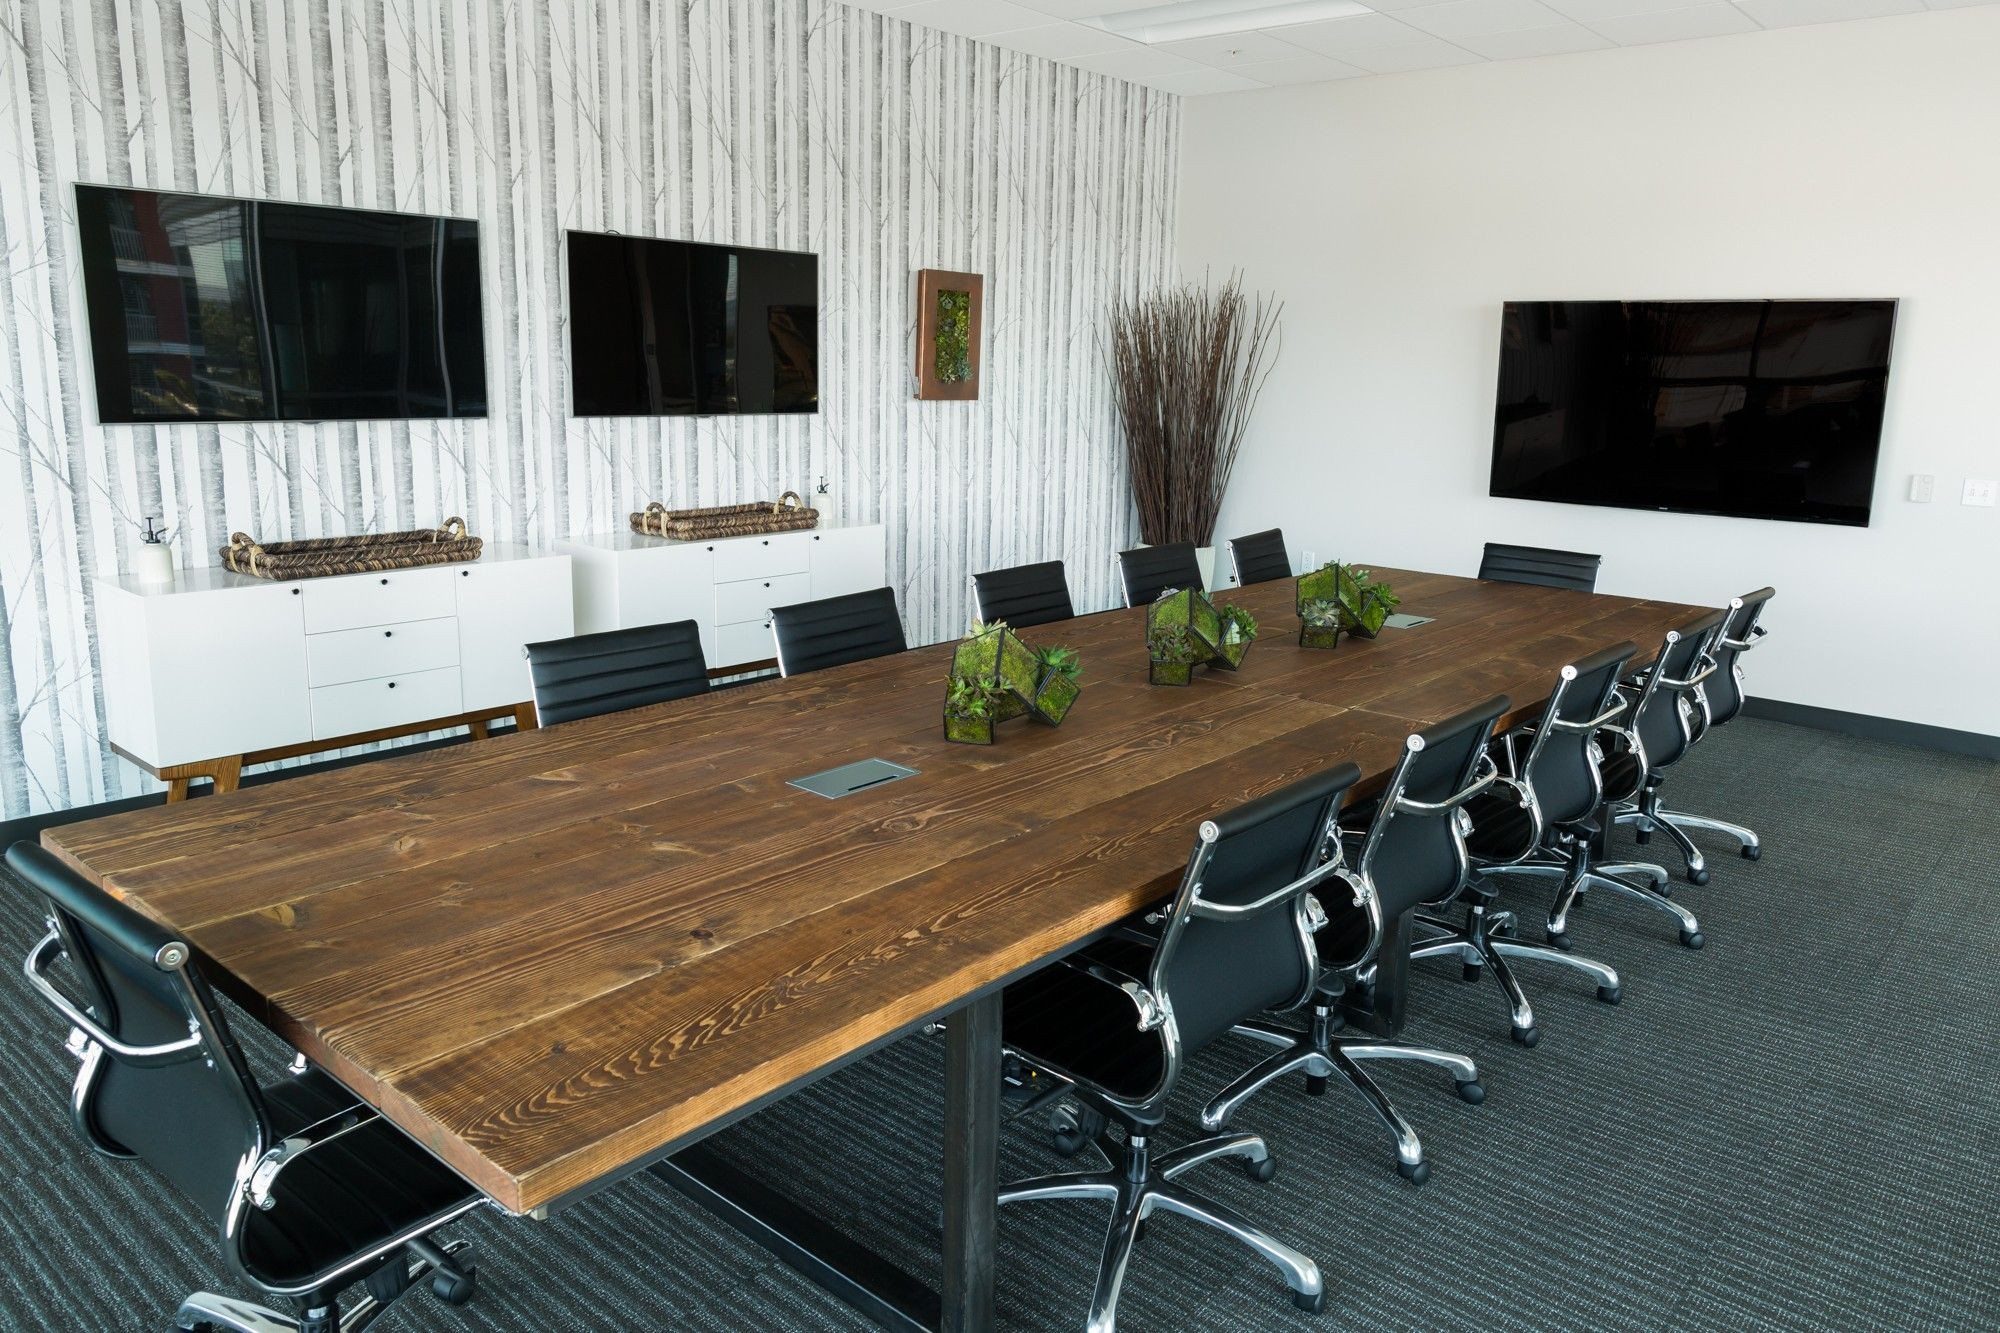 Tables Captivating Cool Conference Tables Rectangle Shaped Hardwood Table  Top Walnut Finish Black Metal Base Built In Cable Management Black Leather  Mid ...